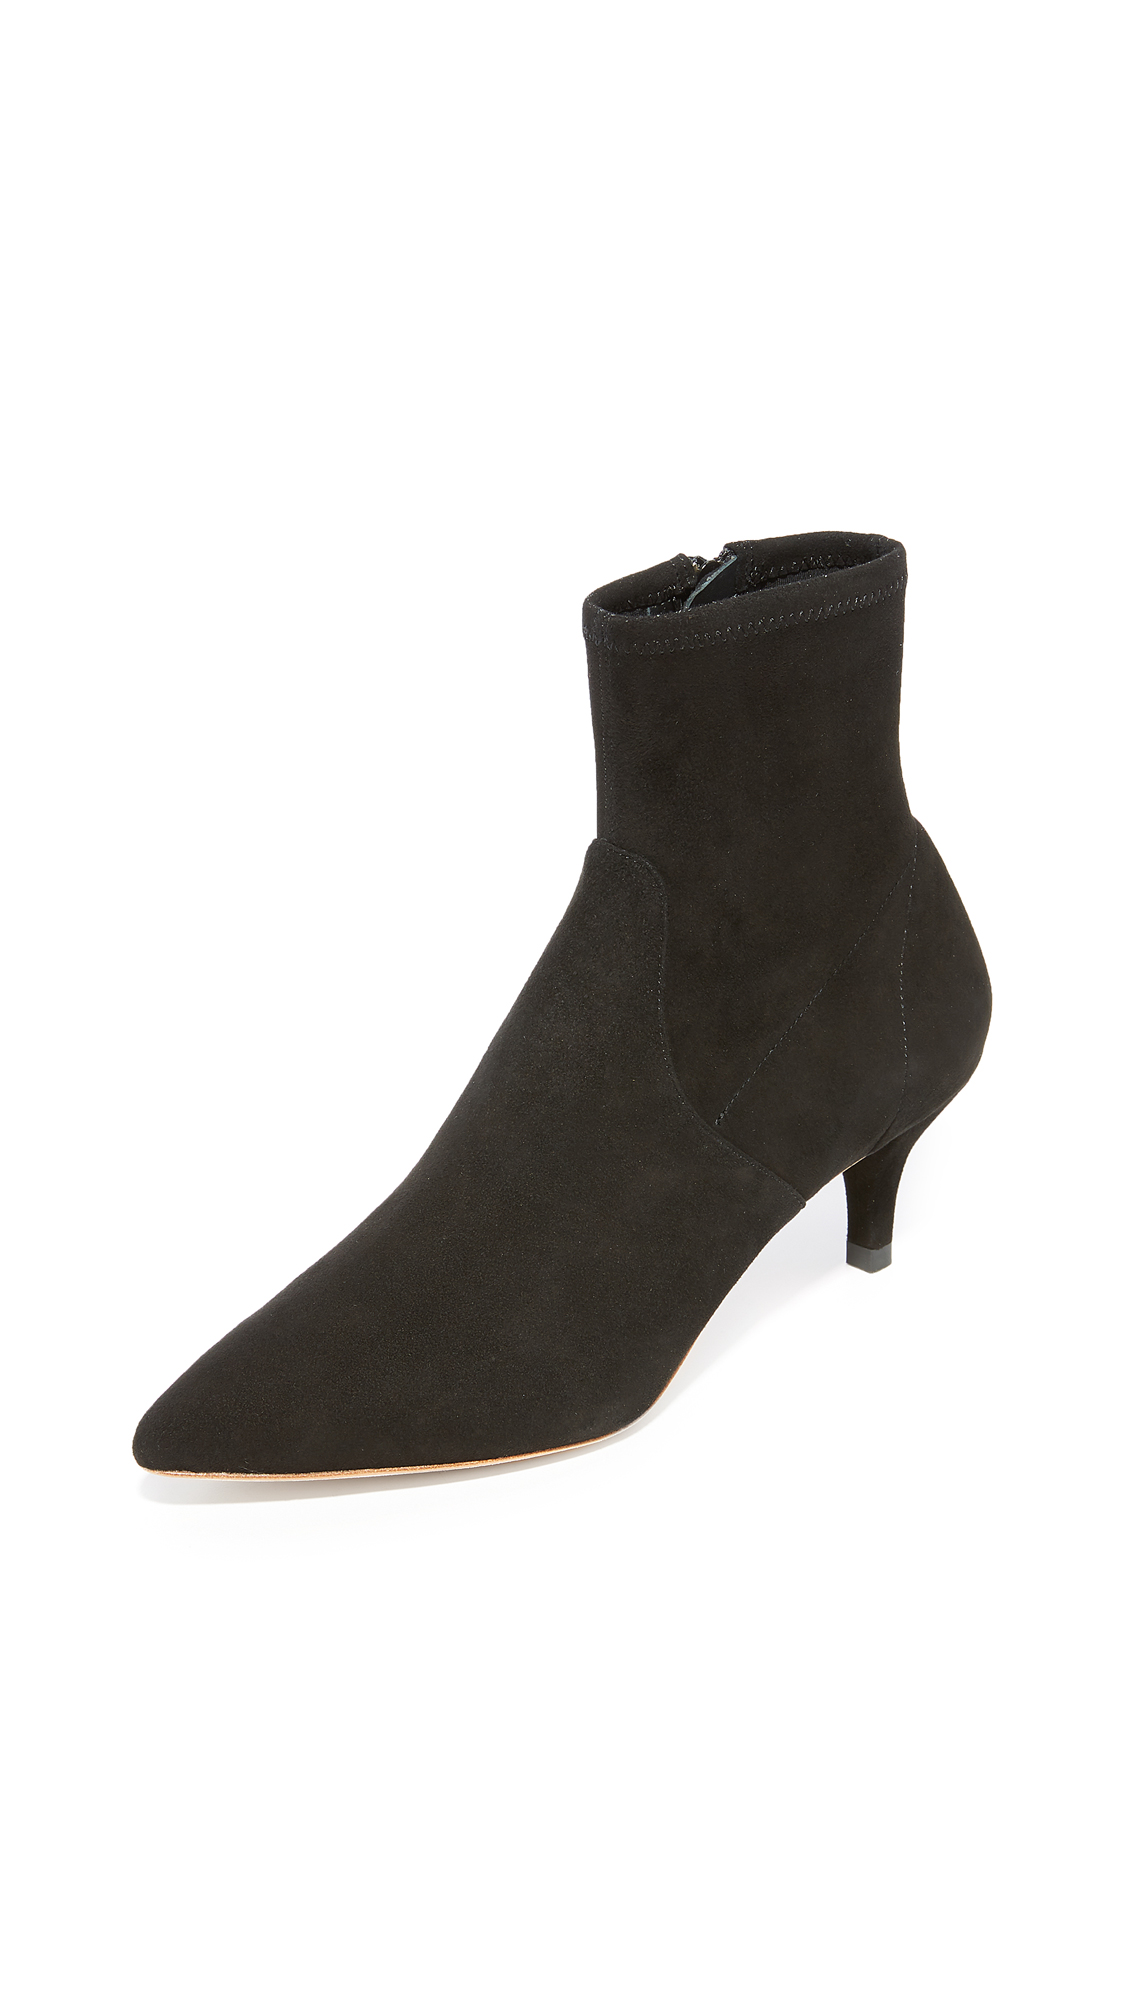 Loeffler Randall Kassidy Kitten Heel Stretch Booties - Black